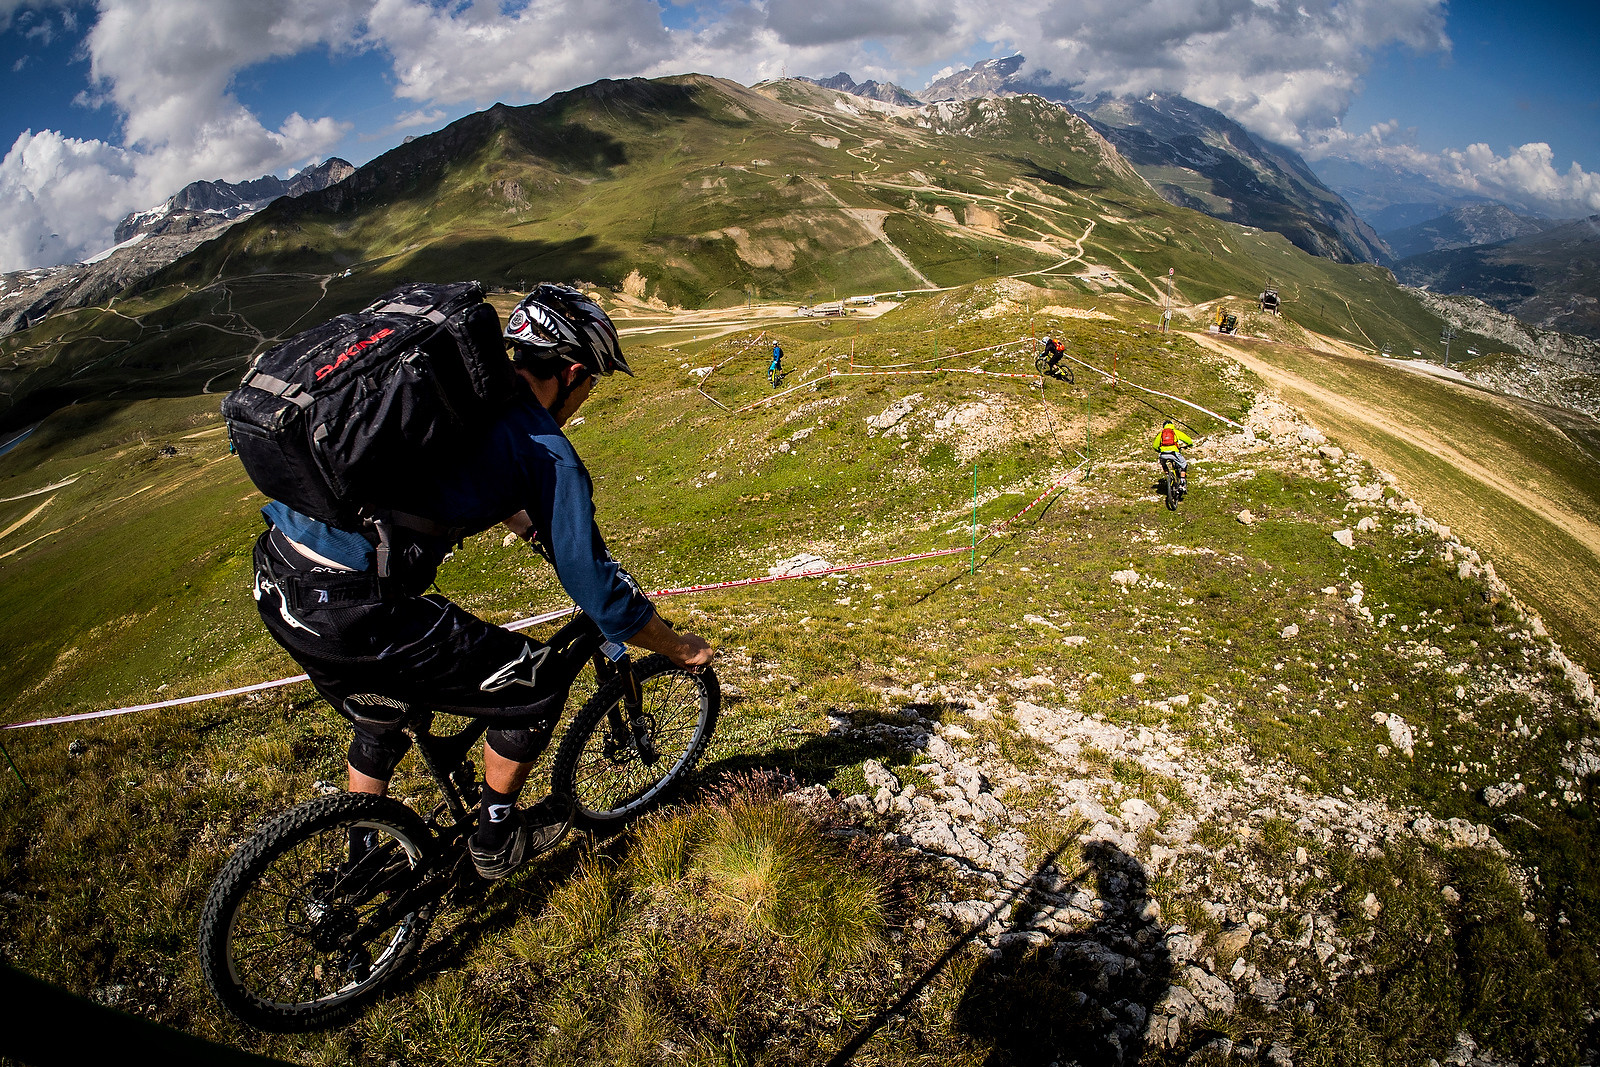 Enduro World Series Val d'Isere Recon - 2013 Enduro World Series 6, Enduro Des Nations Photo Recon - Mountain Biking Pictures - Vital MTB